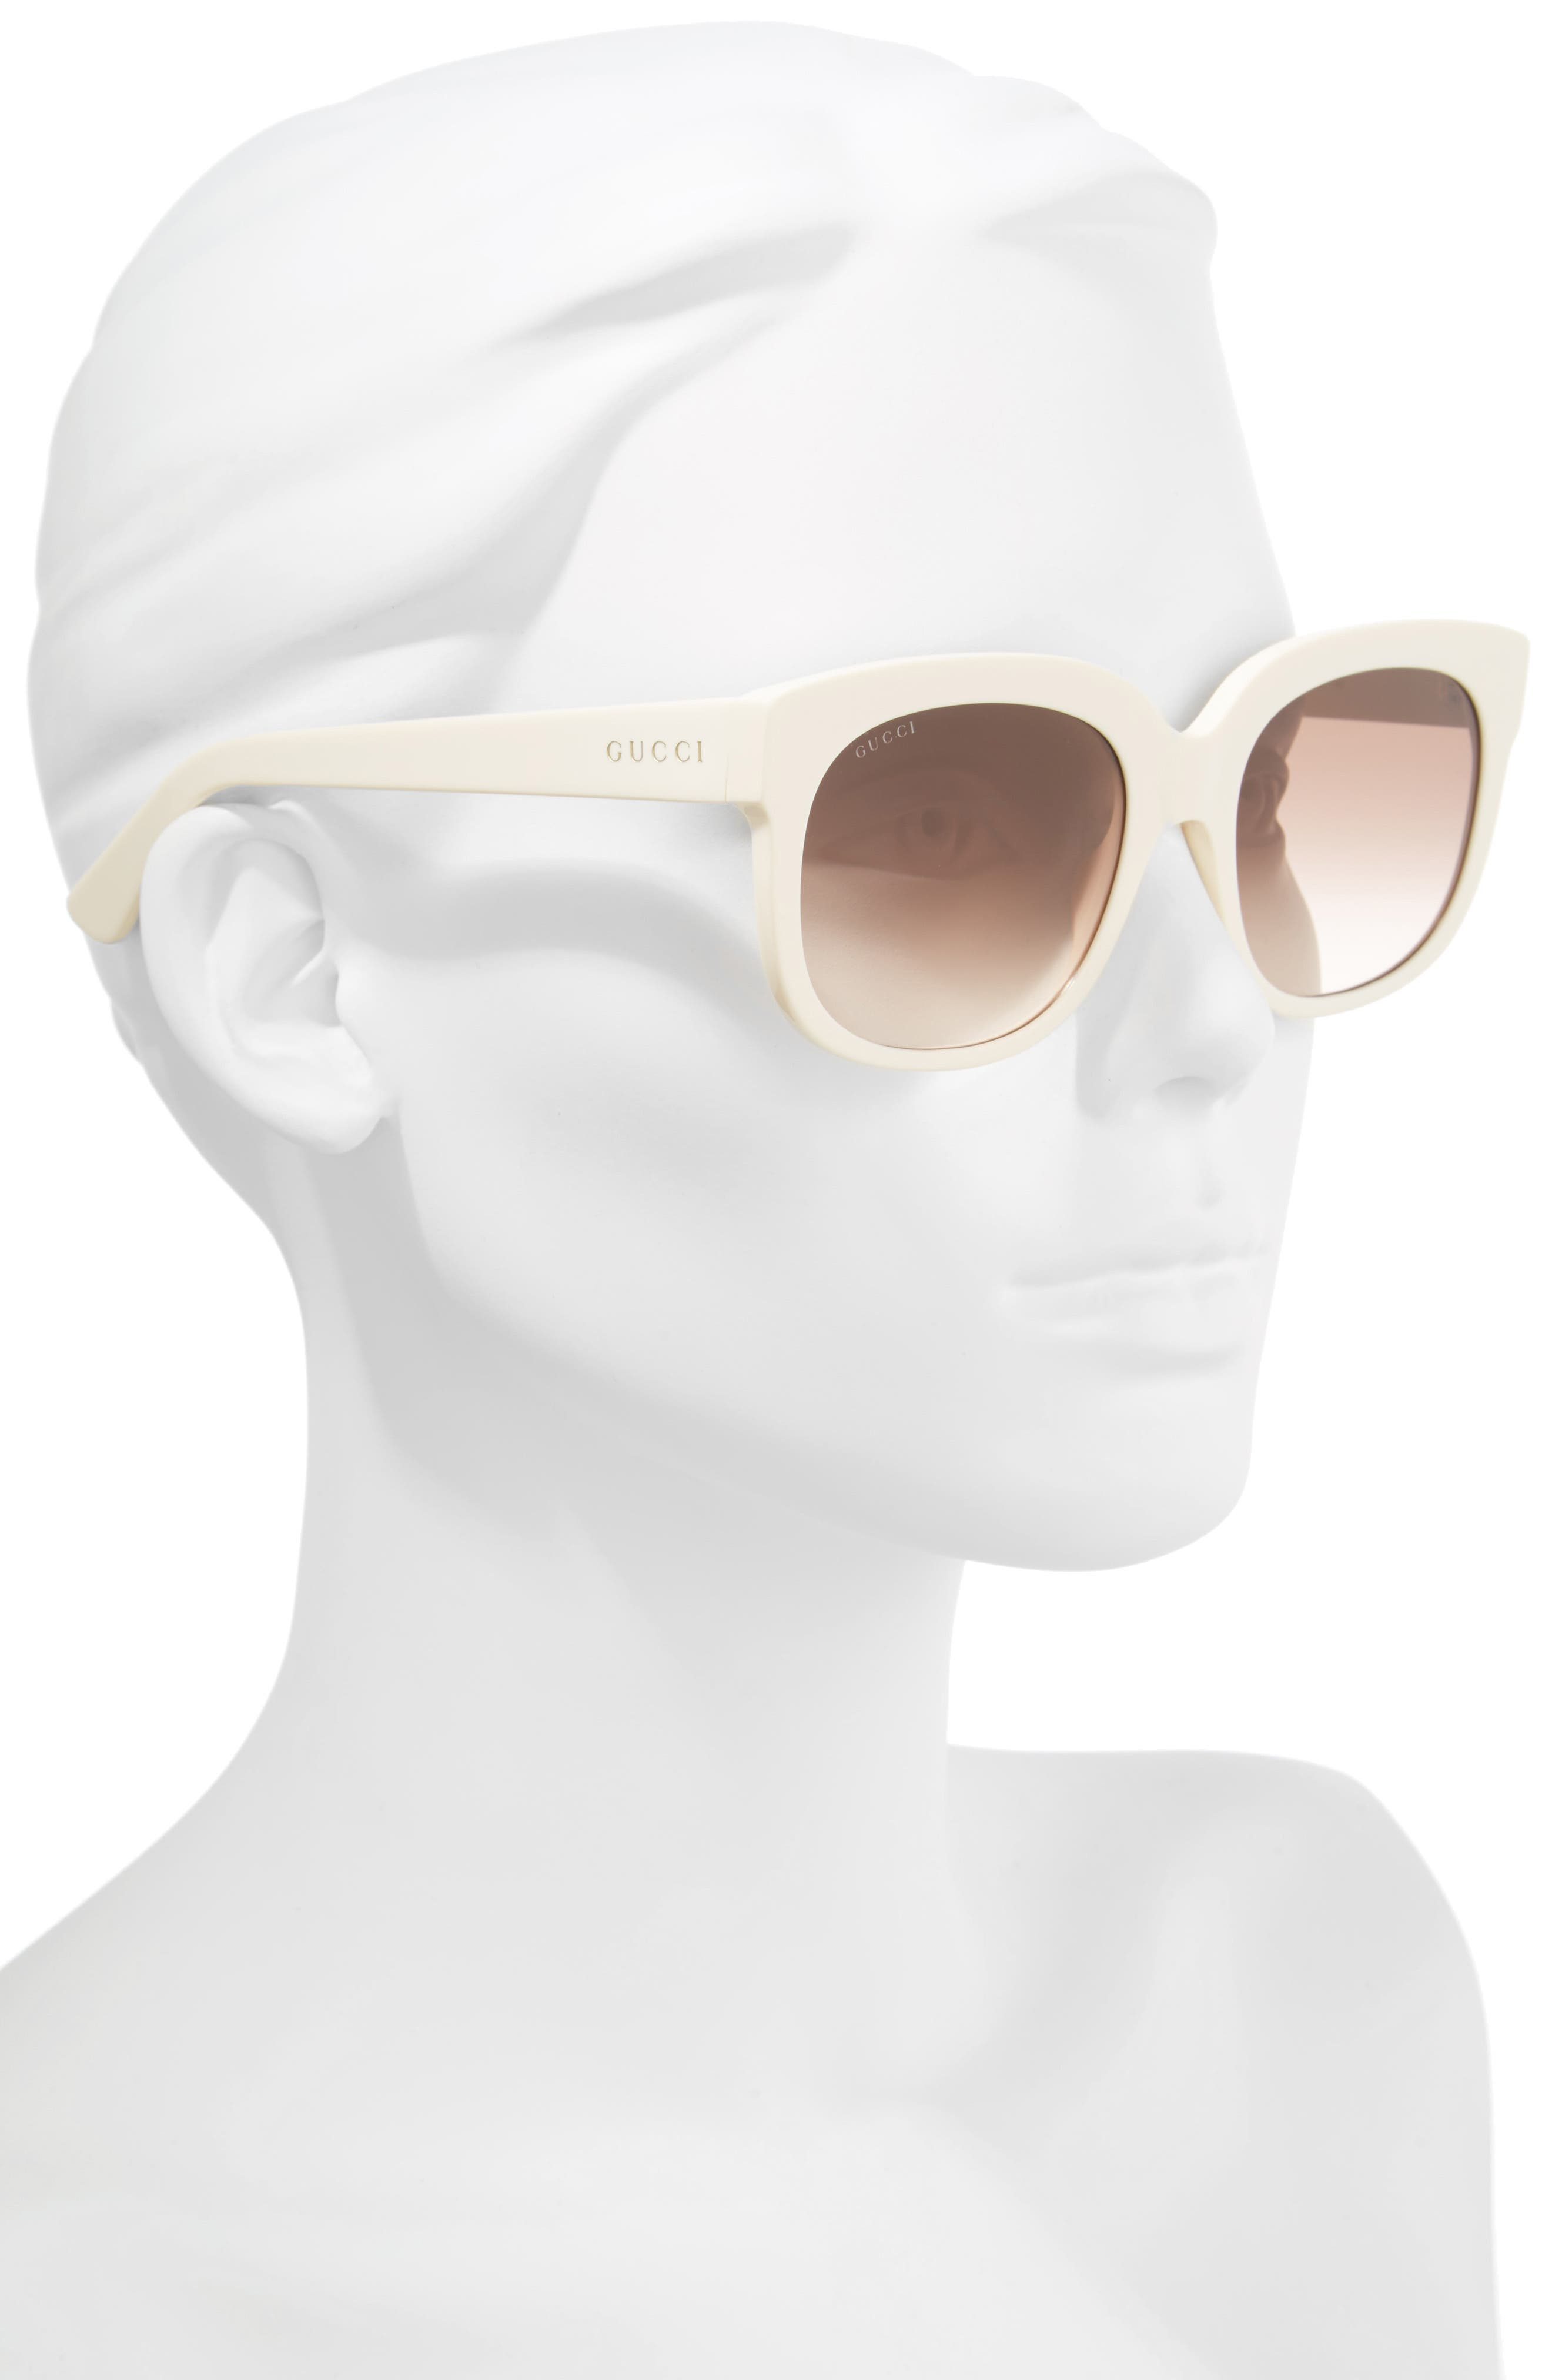 GUCCI, 56mm Gradient Cat Eye Sunglasses, Alternate thumbnail 2, color, IVORY/ BROWN/ PINK